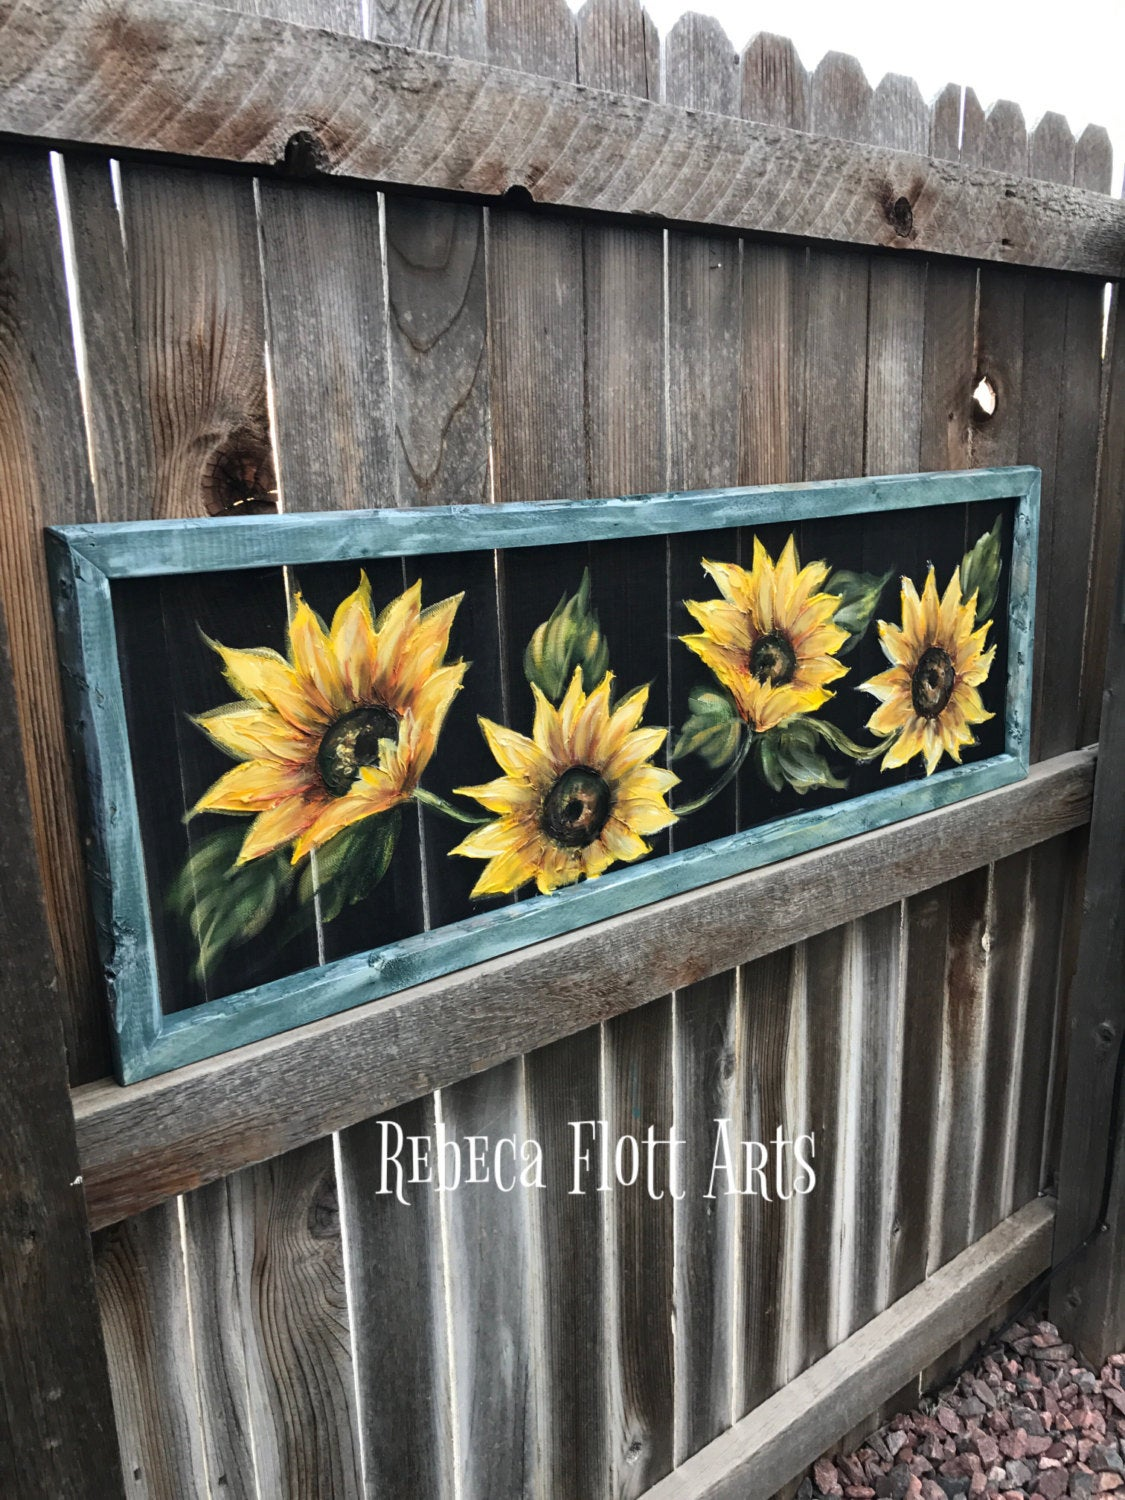 Sunflowers hand painted window screen, perfect porch decor wall art, rustic